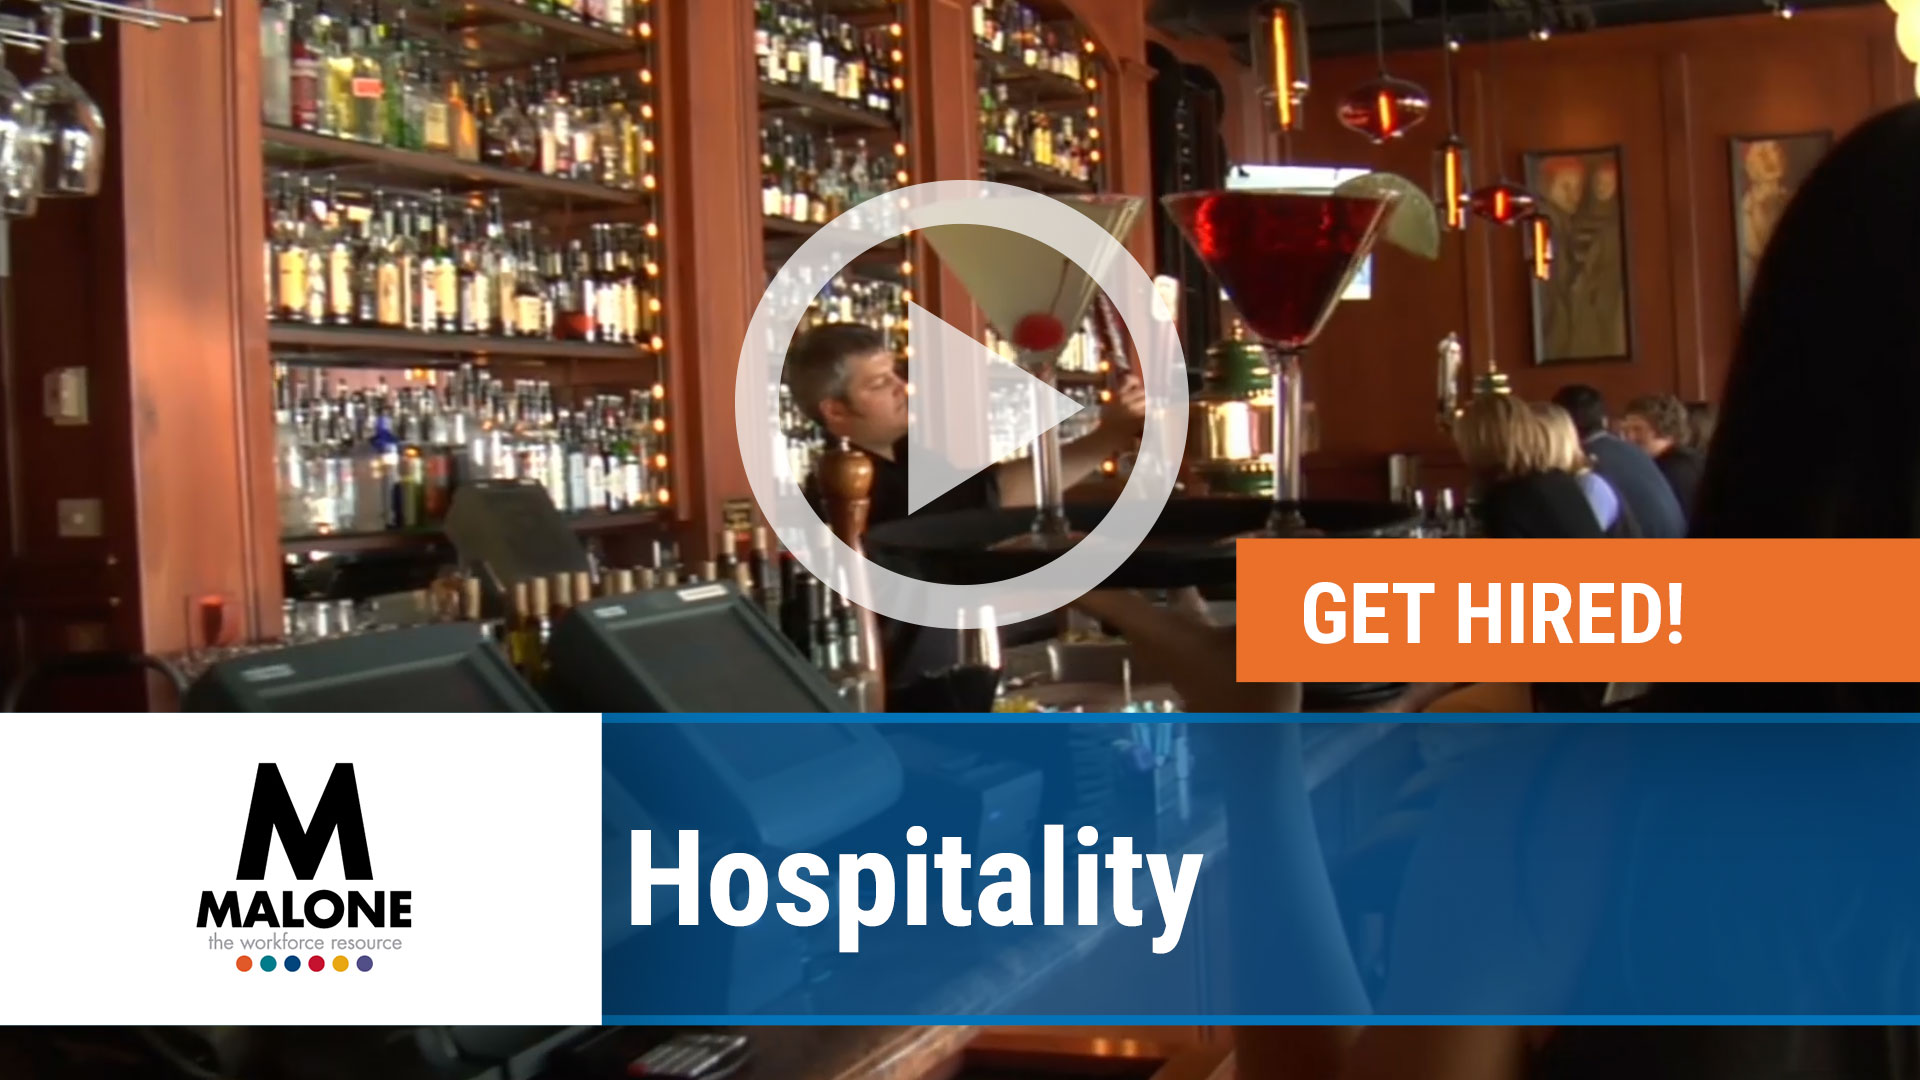 Watch our careers video for available job opening Hospitality Jobs in Columbus, Indiana